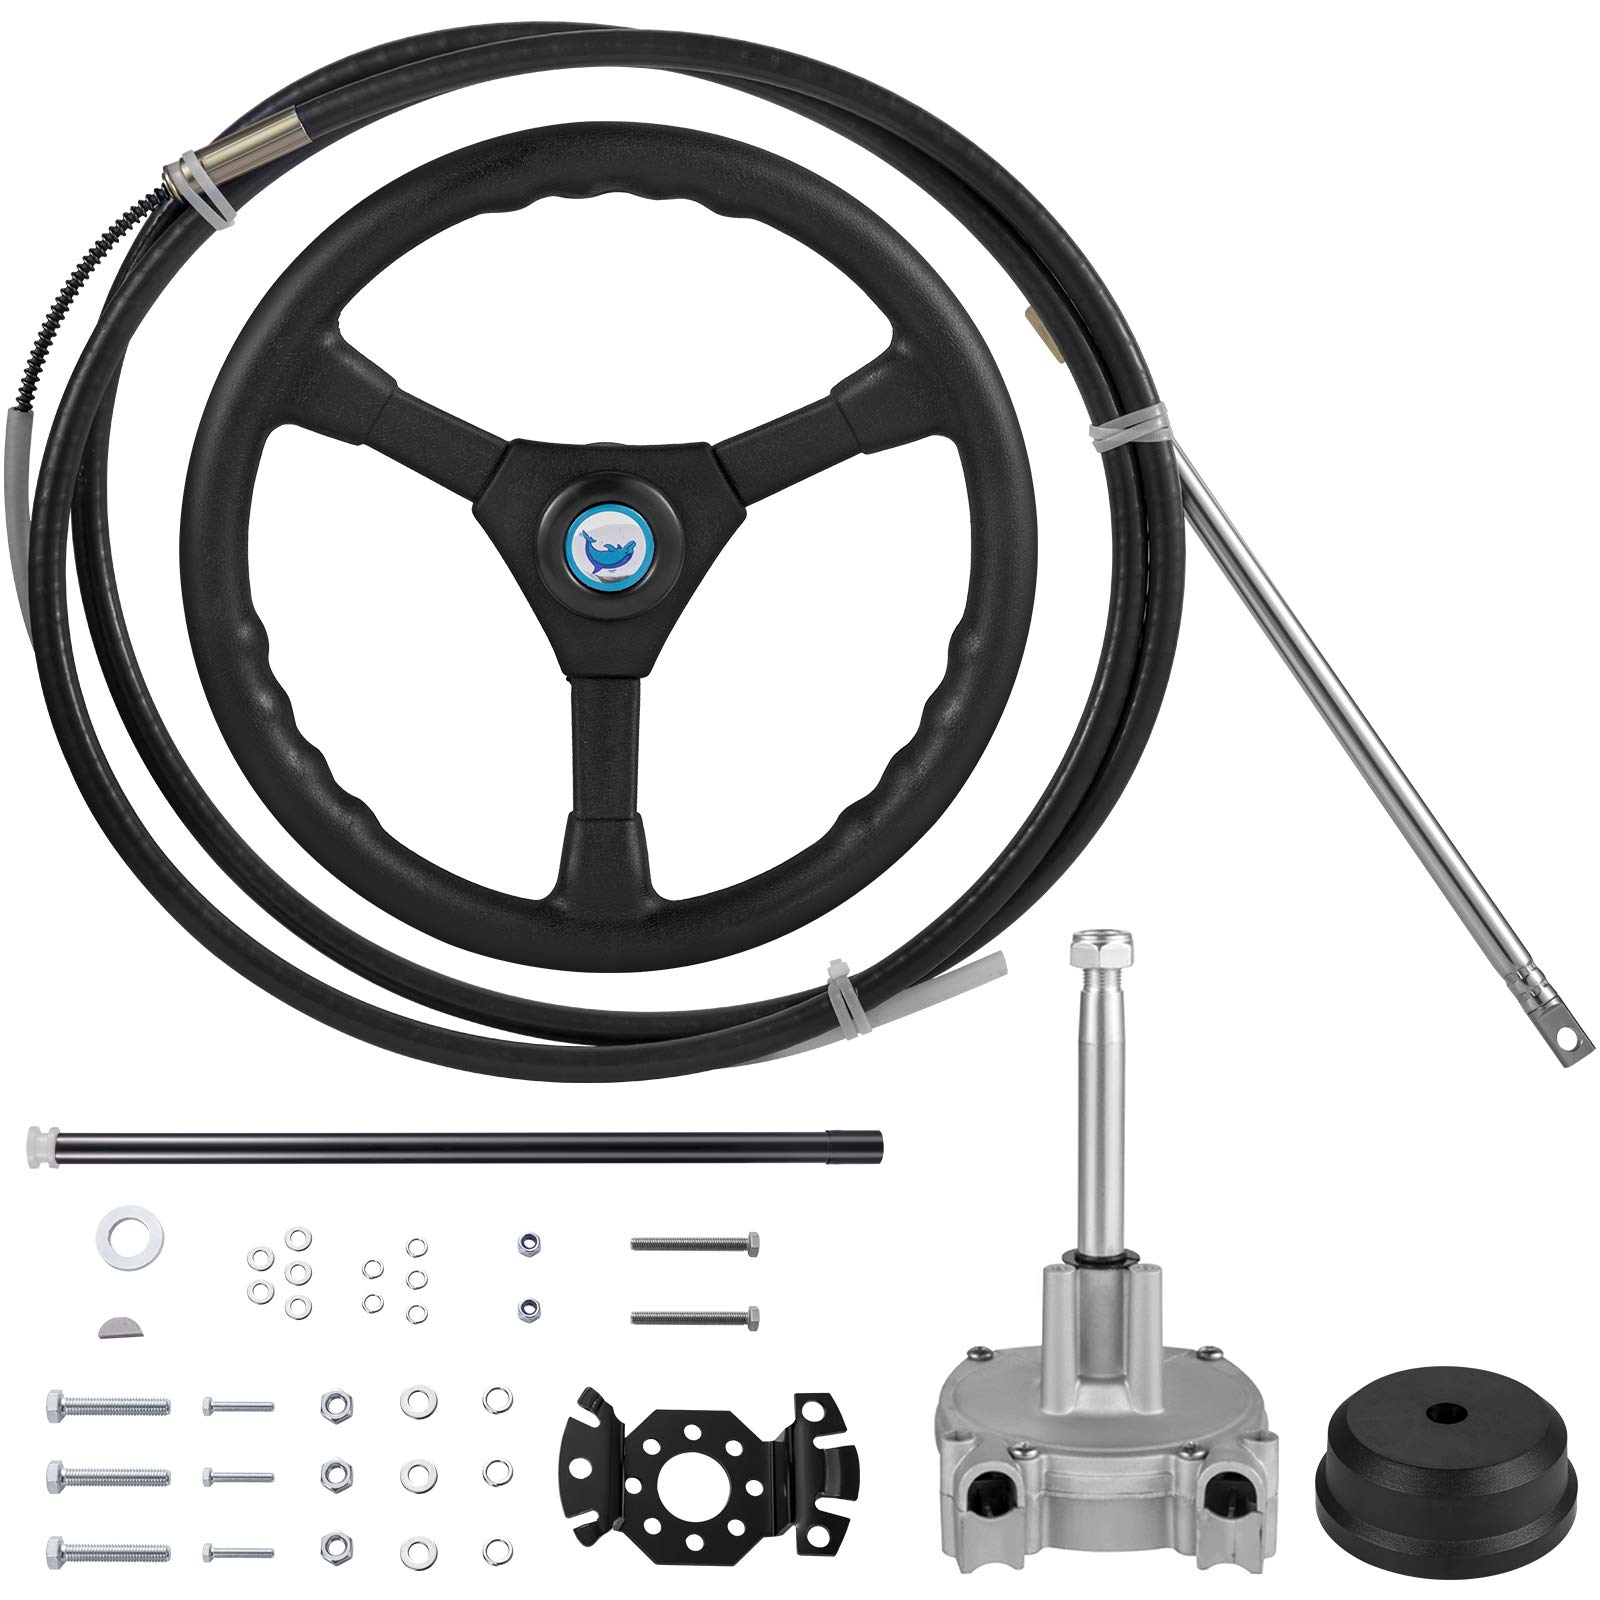 VEVOR Rotary Steering Kit 13 Feet Steering Cable Boat Steering System Outboard Steering Cable Kit with Rotary Helm, Steering Cable Complete Mechanical Steering System for Most Single Station Boats